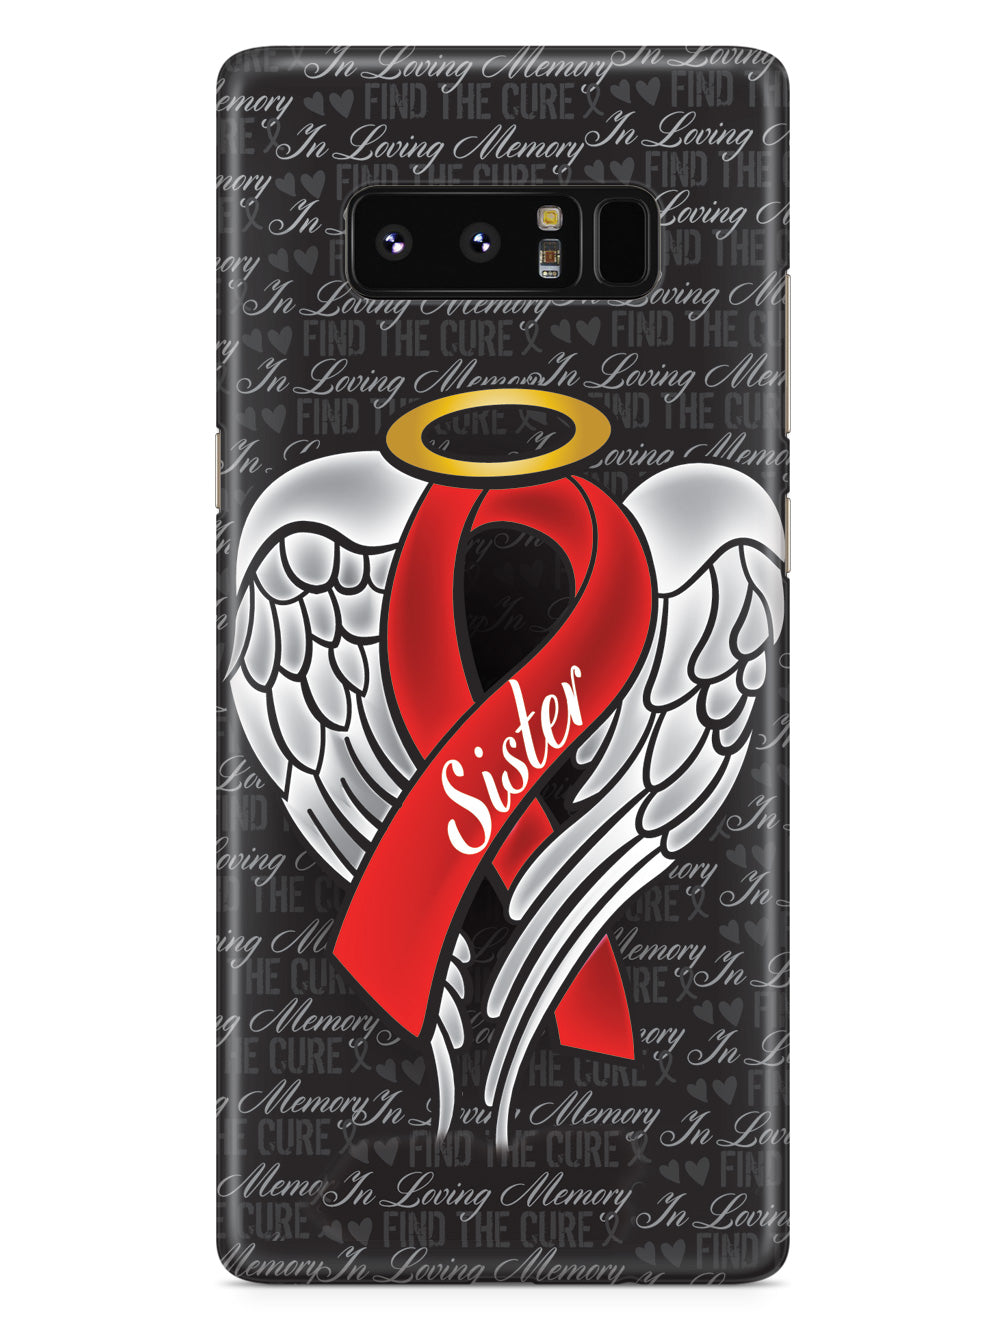 In Loving Memory of My Sister - Red Ribbon Case